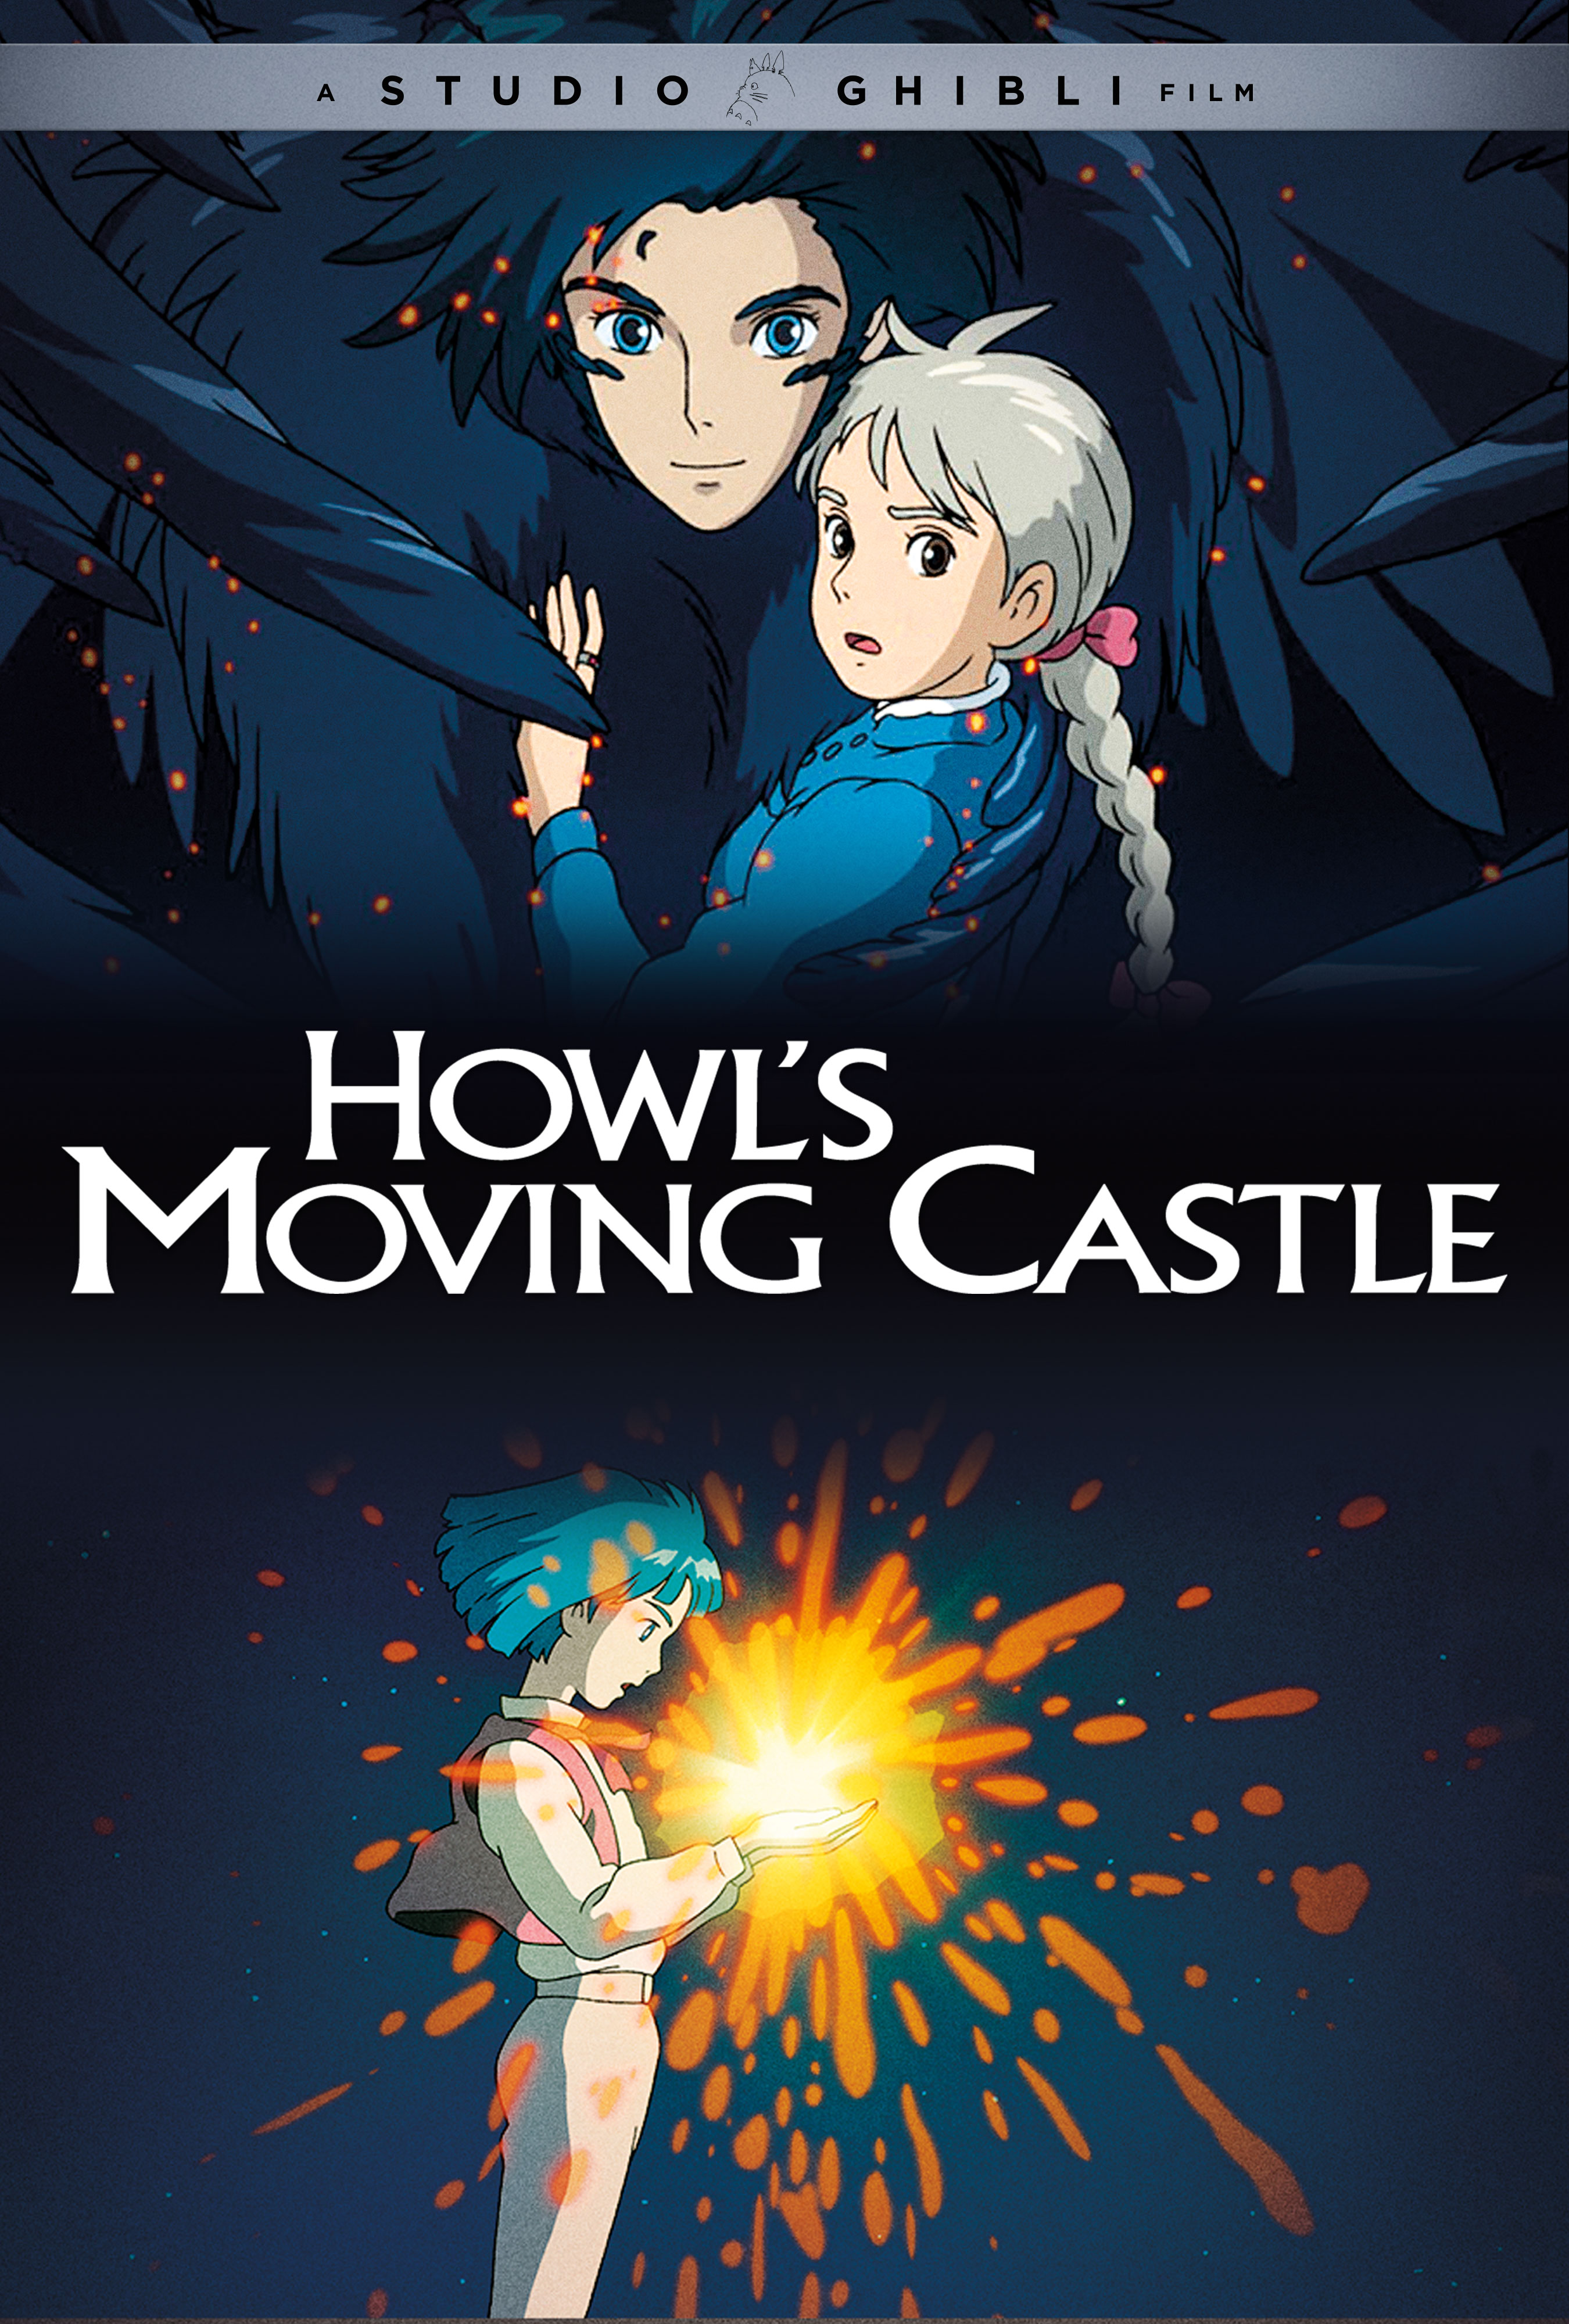 The official movie poster for the GKIDS release of Howl's Moving Castle, featuring Howl in his raven transformation carrying and Sophie and a scene of Howl forming his pact with Calcifer.